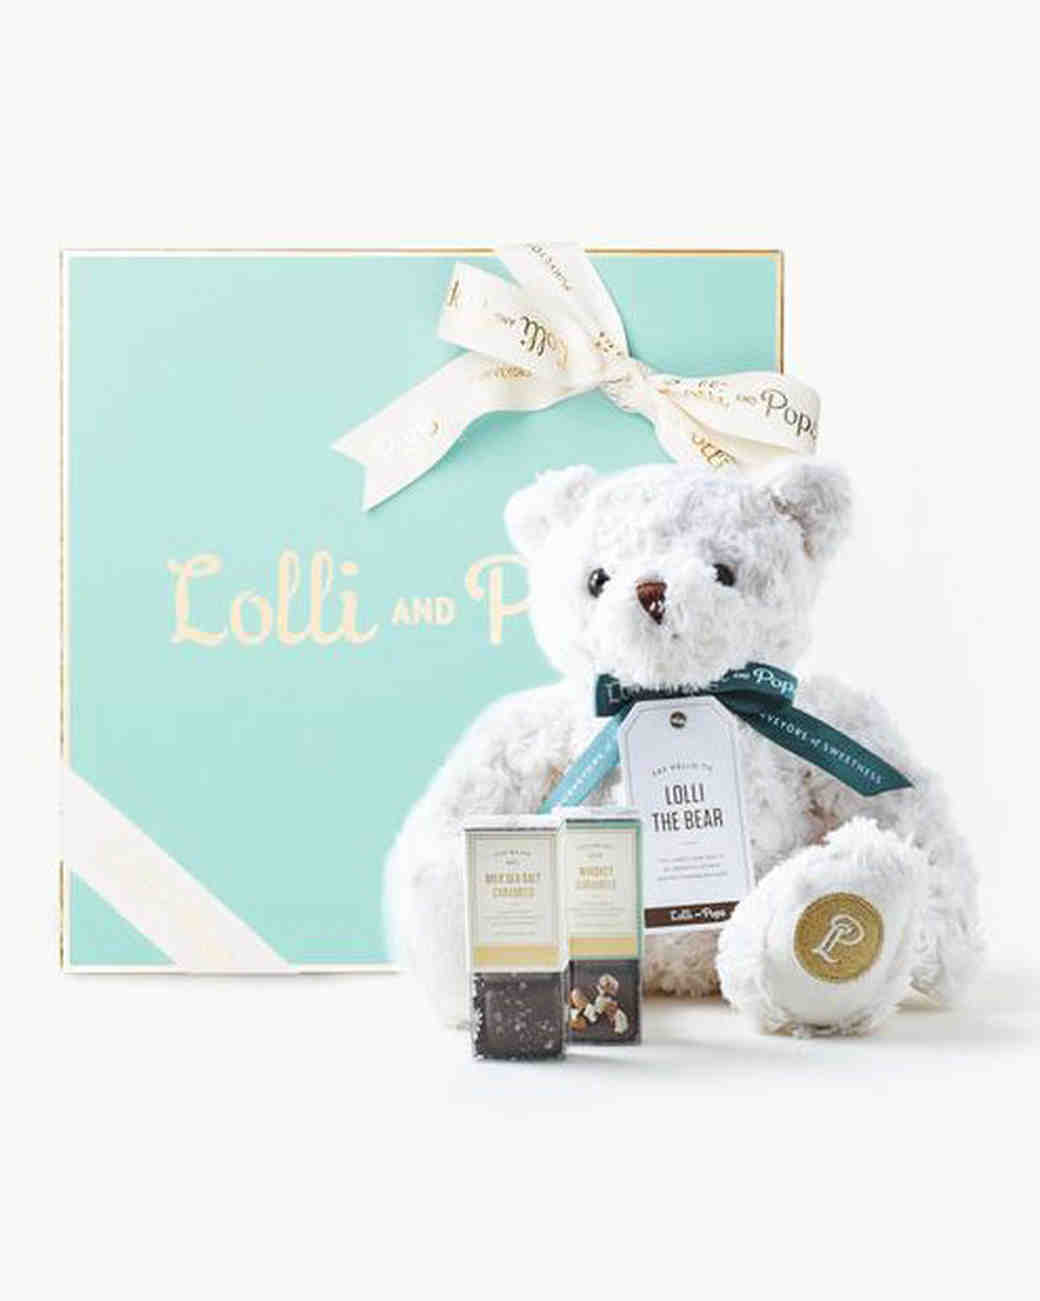 ring bearer gift guide lolli and pops chocolate bear